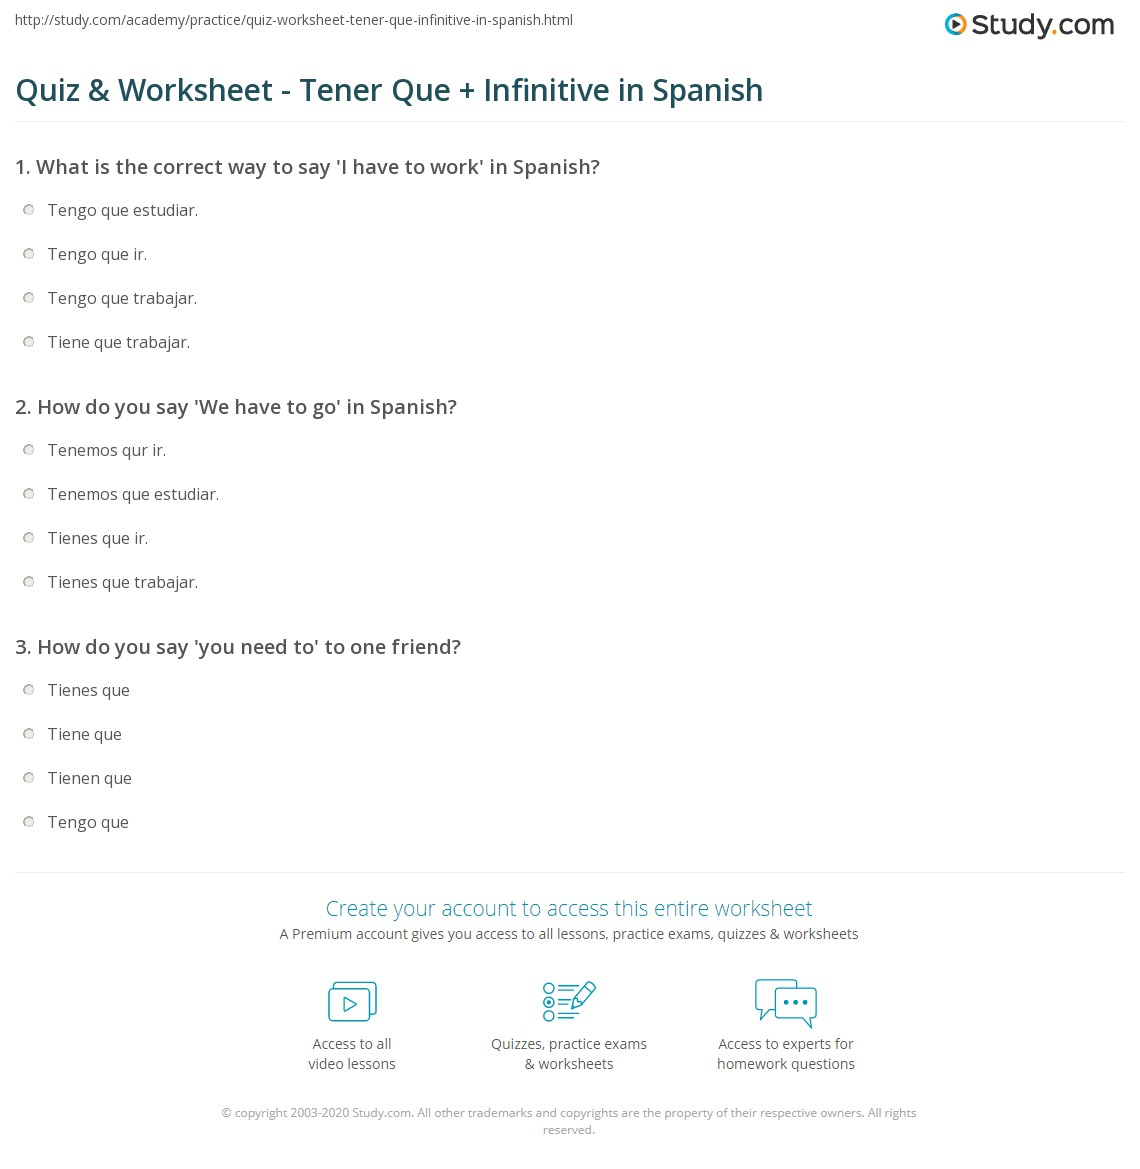 Quiz & Worksheet - Tener Que + Infinitive in Spanish | Study.com